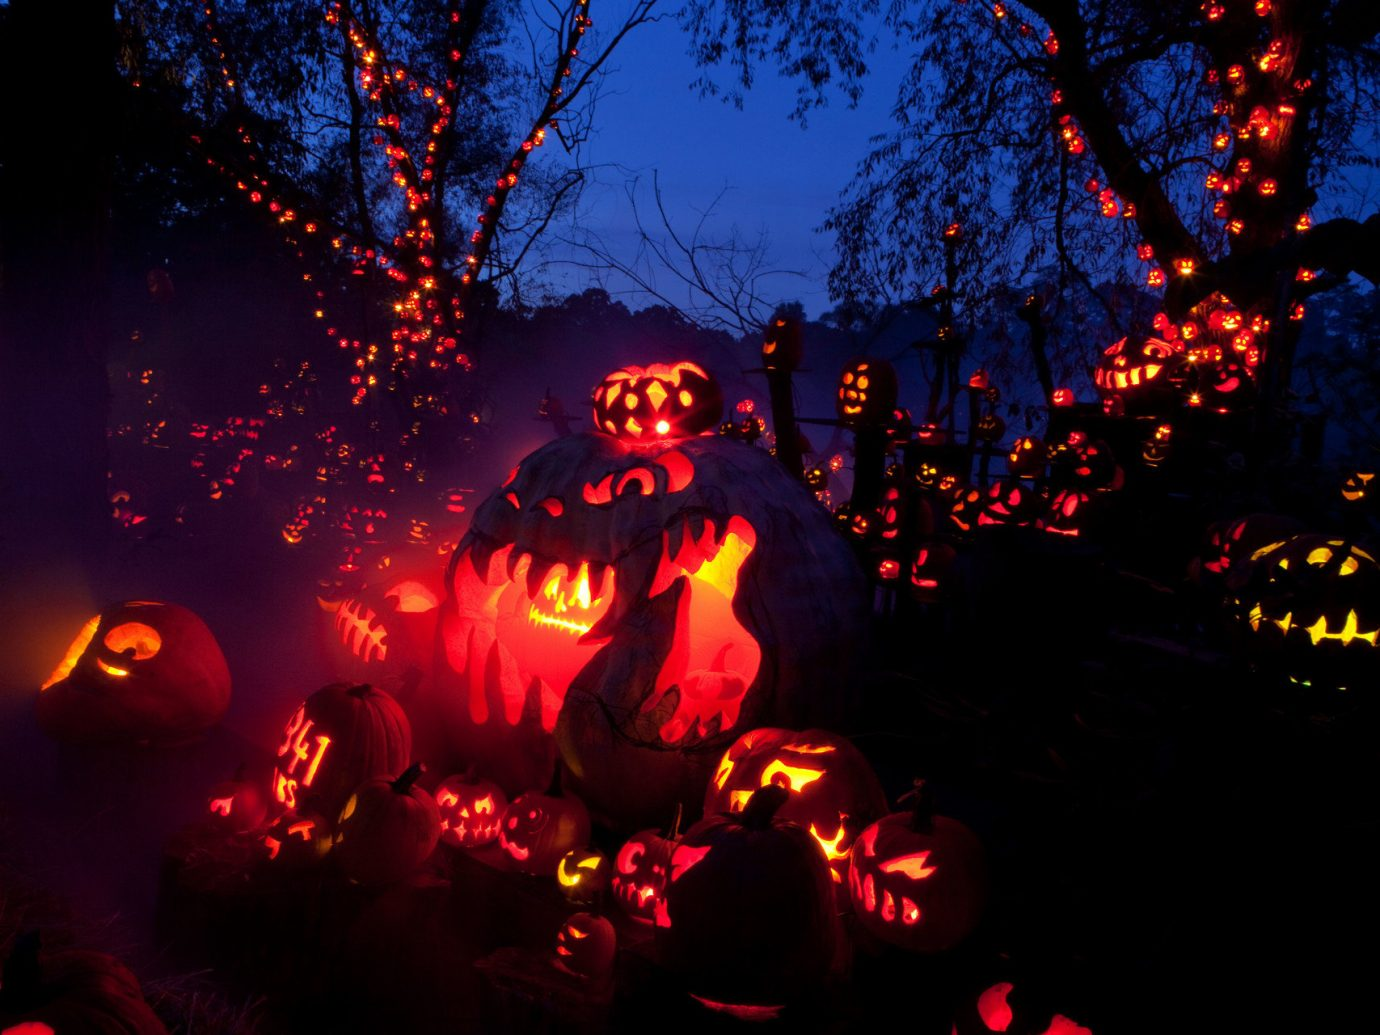 art artistic artsy Design festive glow halloween holiday lights night night lights orange Outdoors pumpkins trees Trip Ideas tree outdoor light darkness geological phenomenon christmas decoration christmas lights